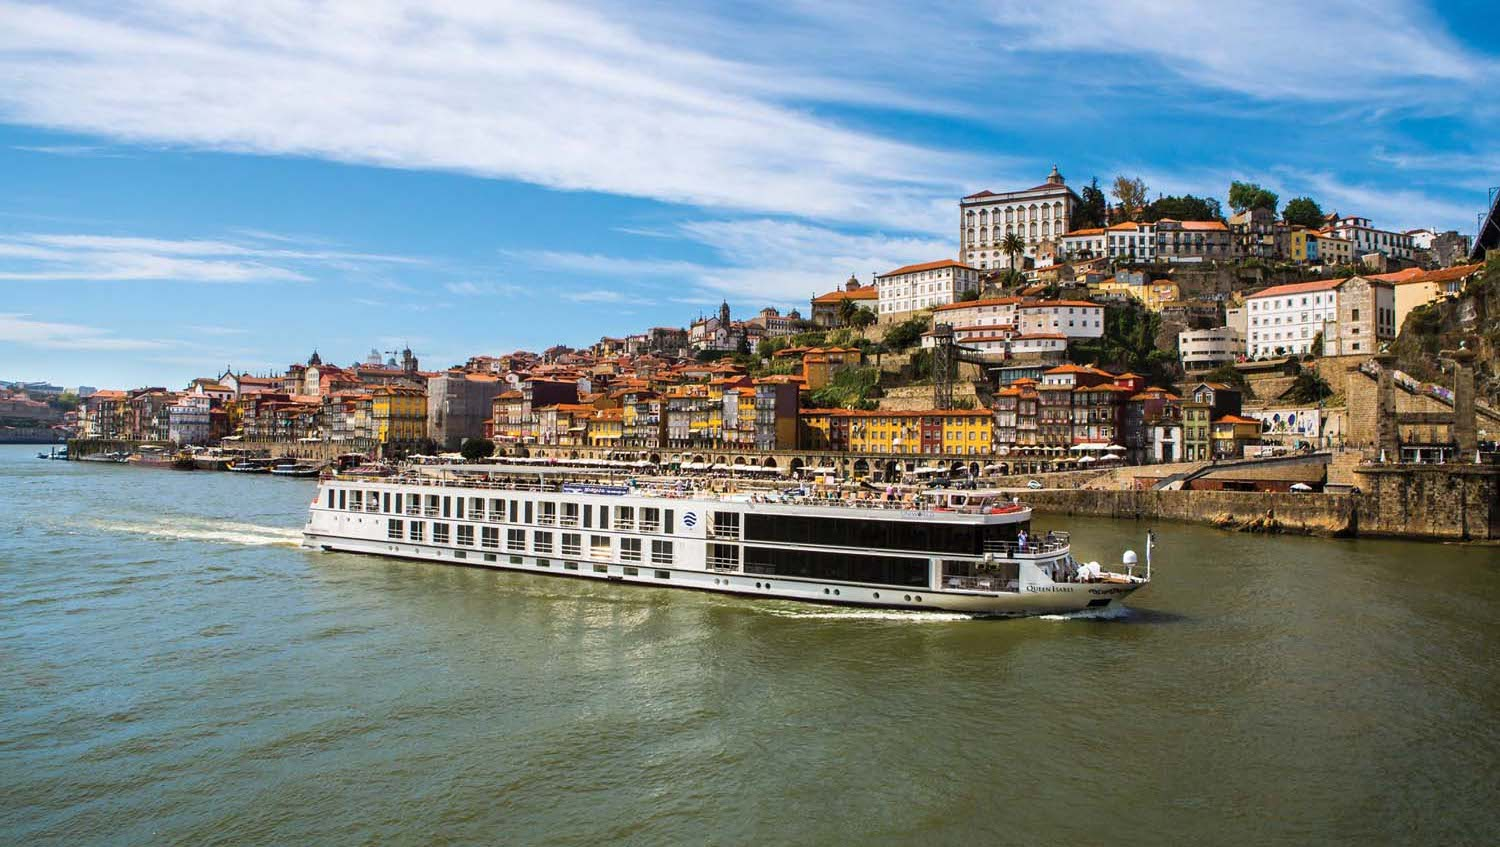 https://www.visitportugal.com/en/content/douro-valley